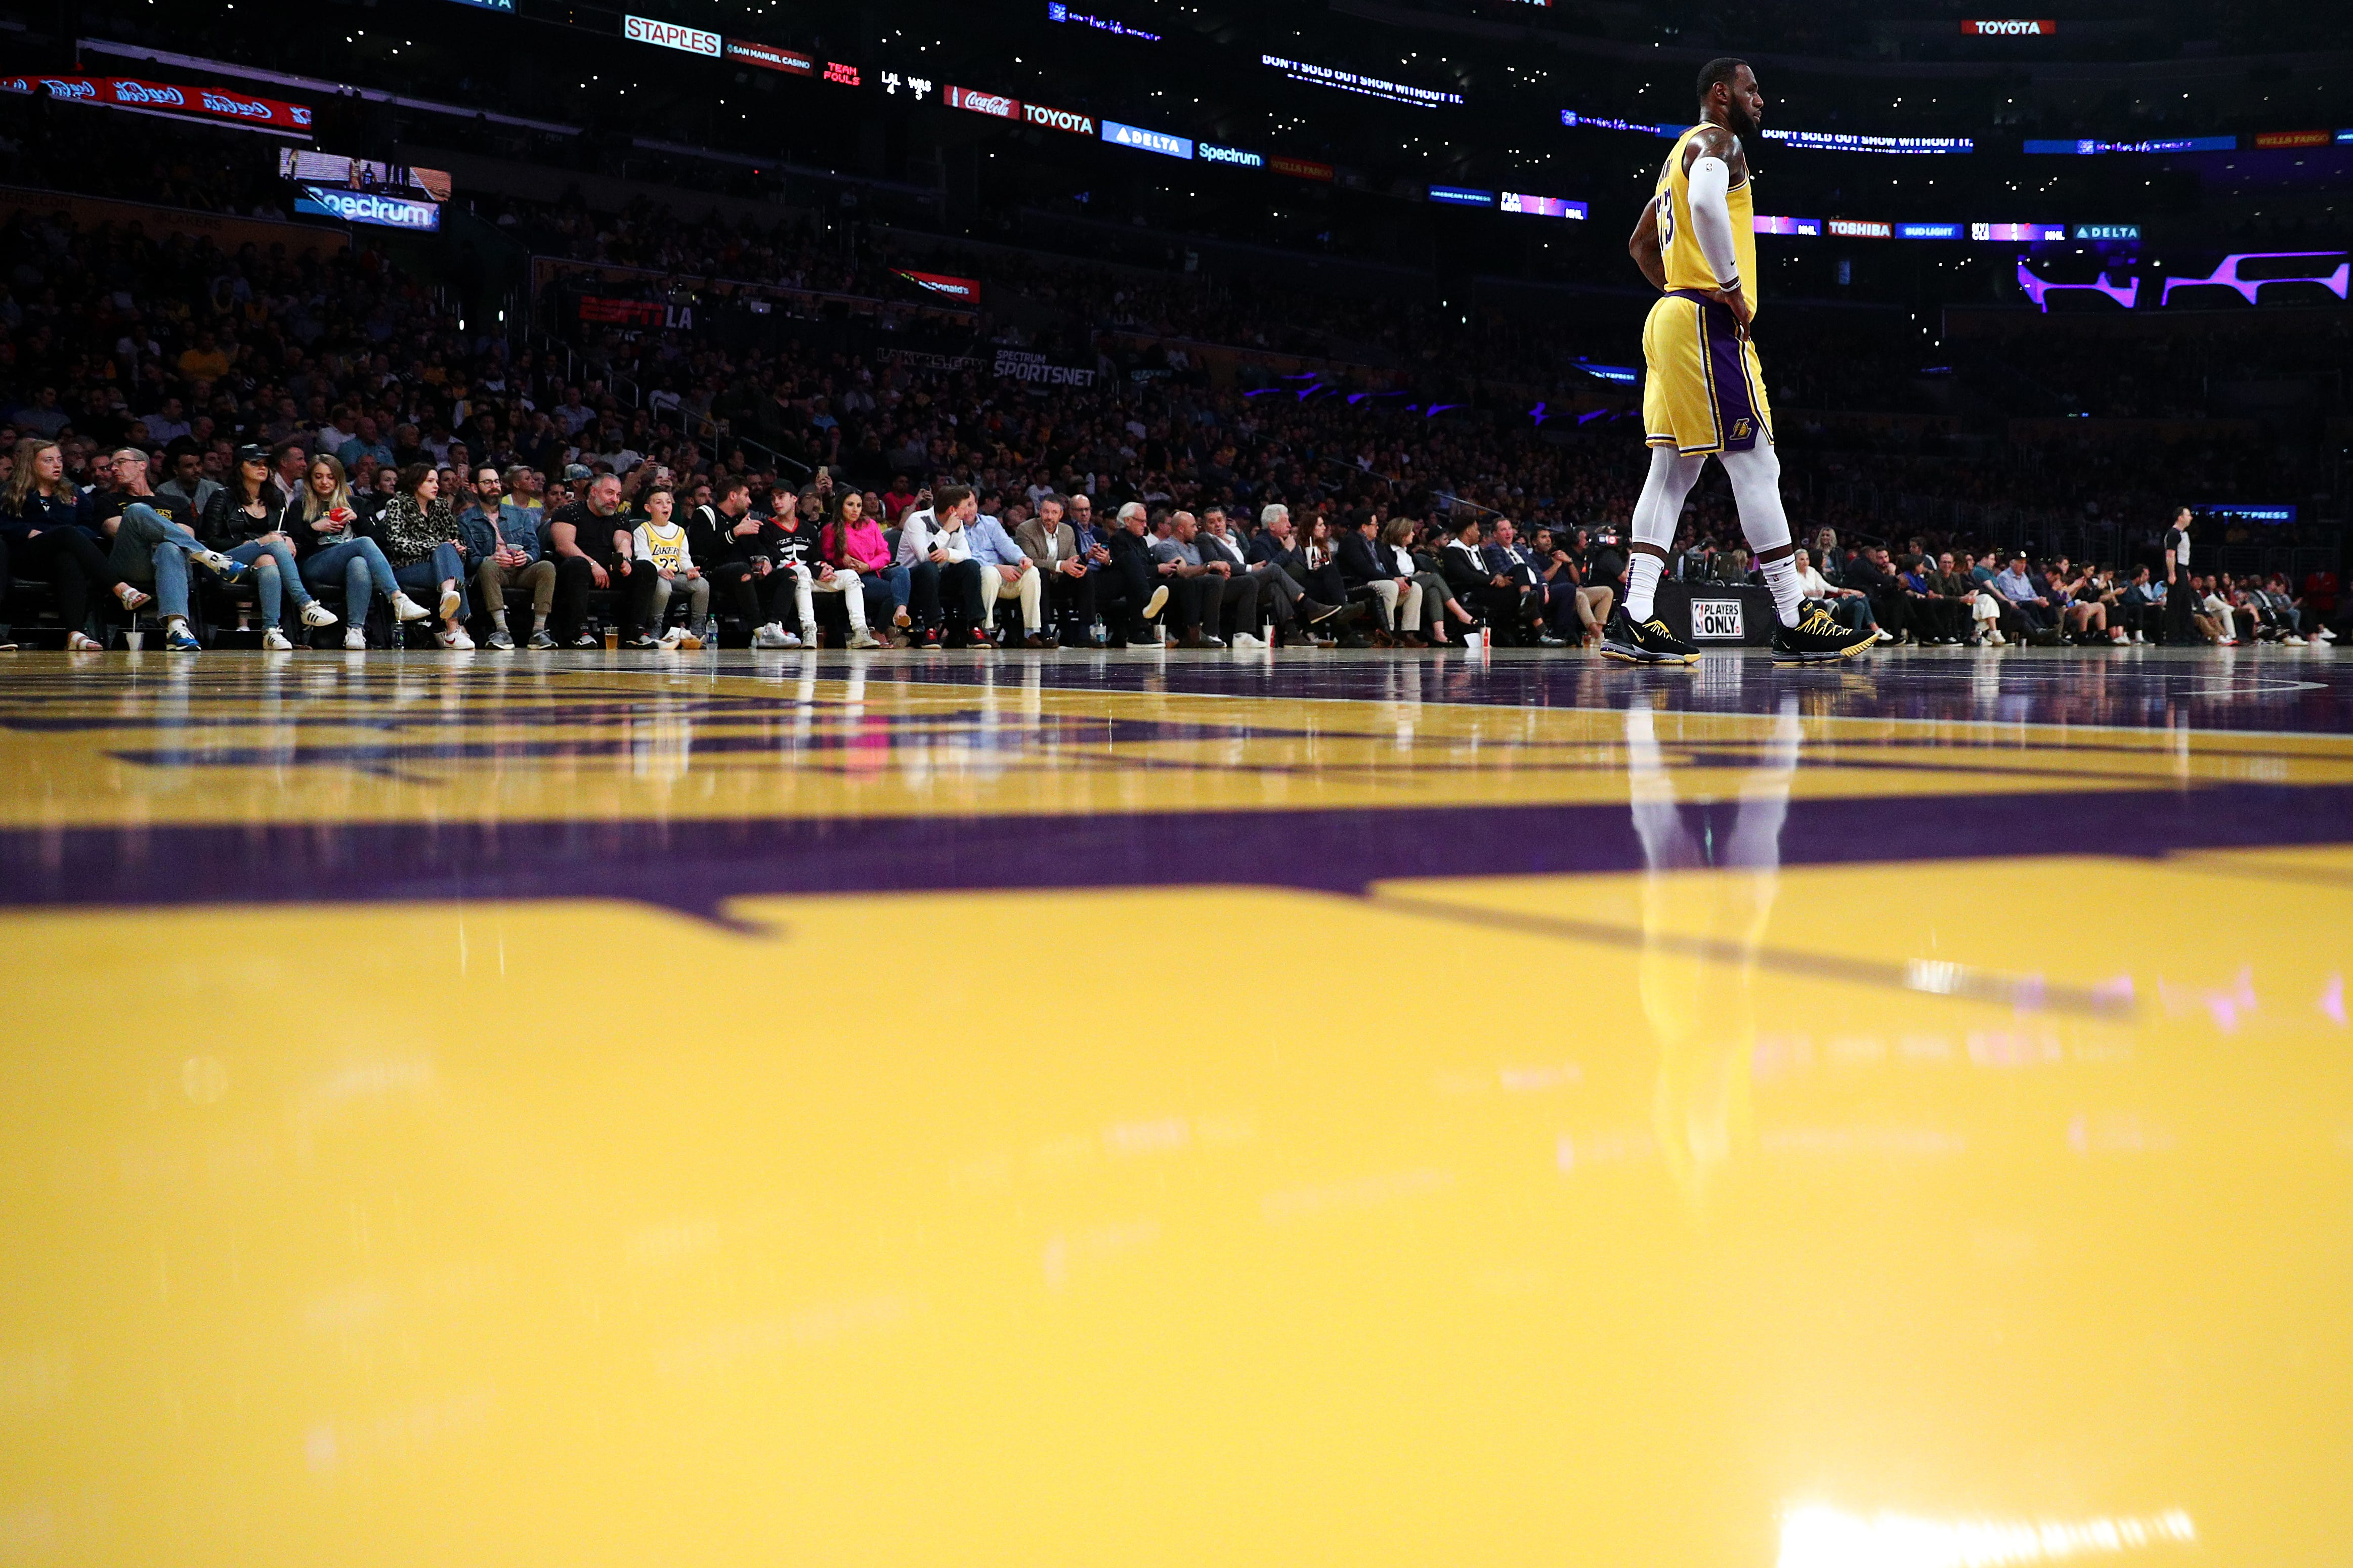 March 26, 2019: LeBron James looks on during the Los Angeles Lakers' 124-106 win over the Washington Wizards at Staples Center.